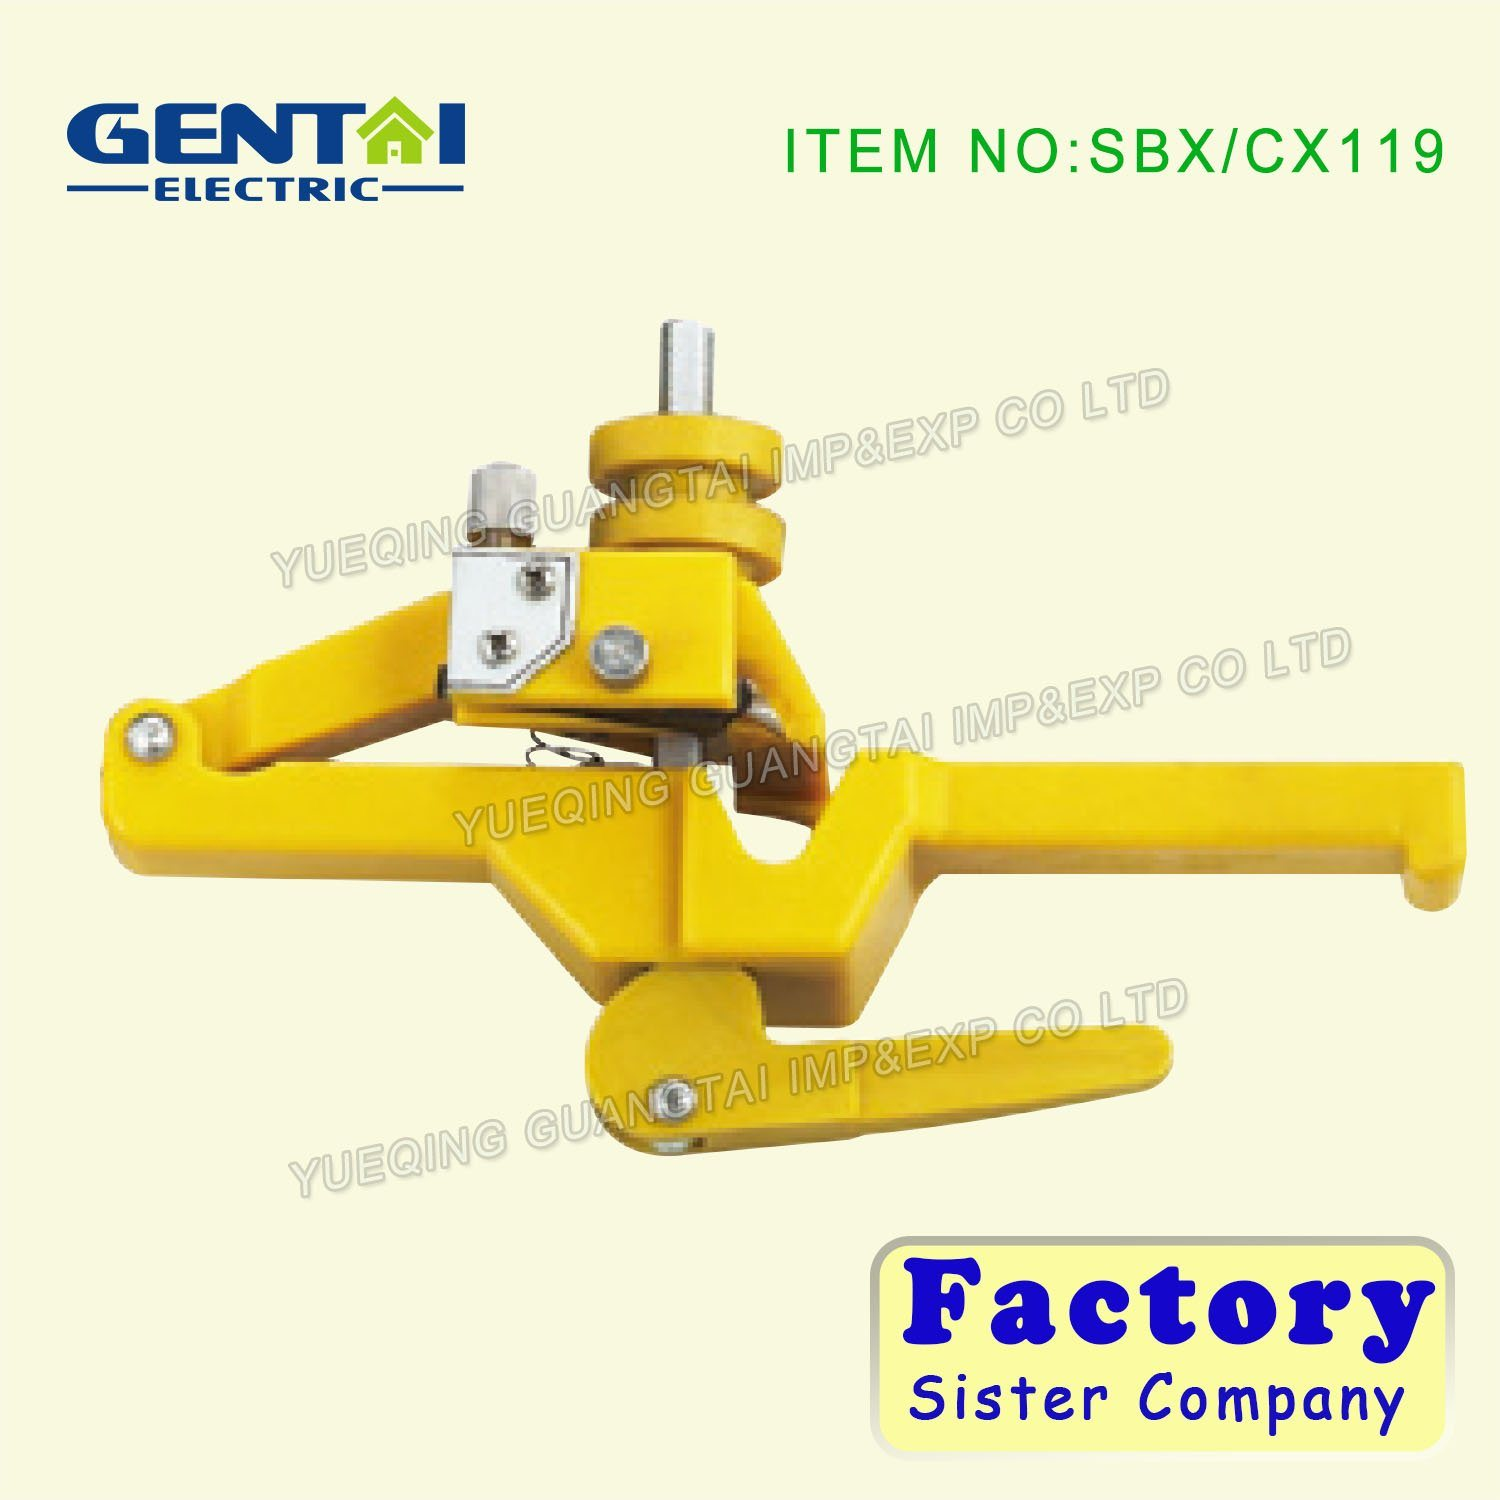 Sbx/Cx119 Cable Knife Stripping Tools Wire Stripper